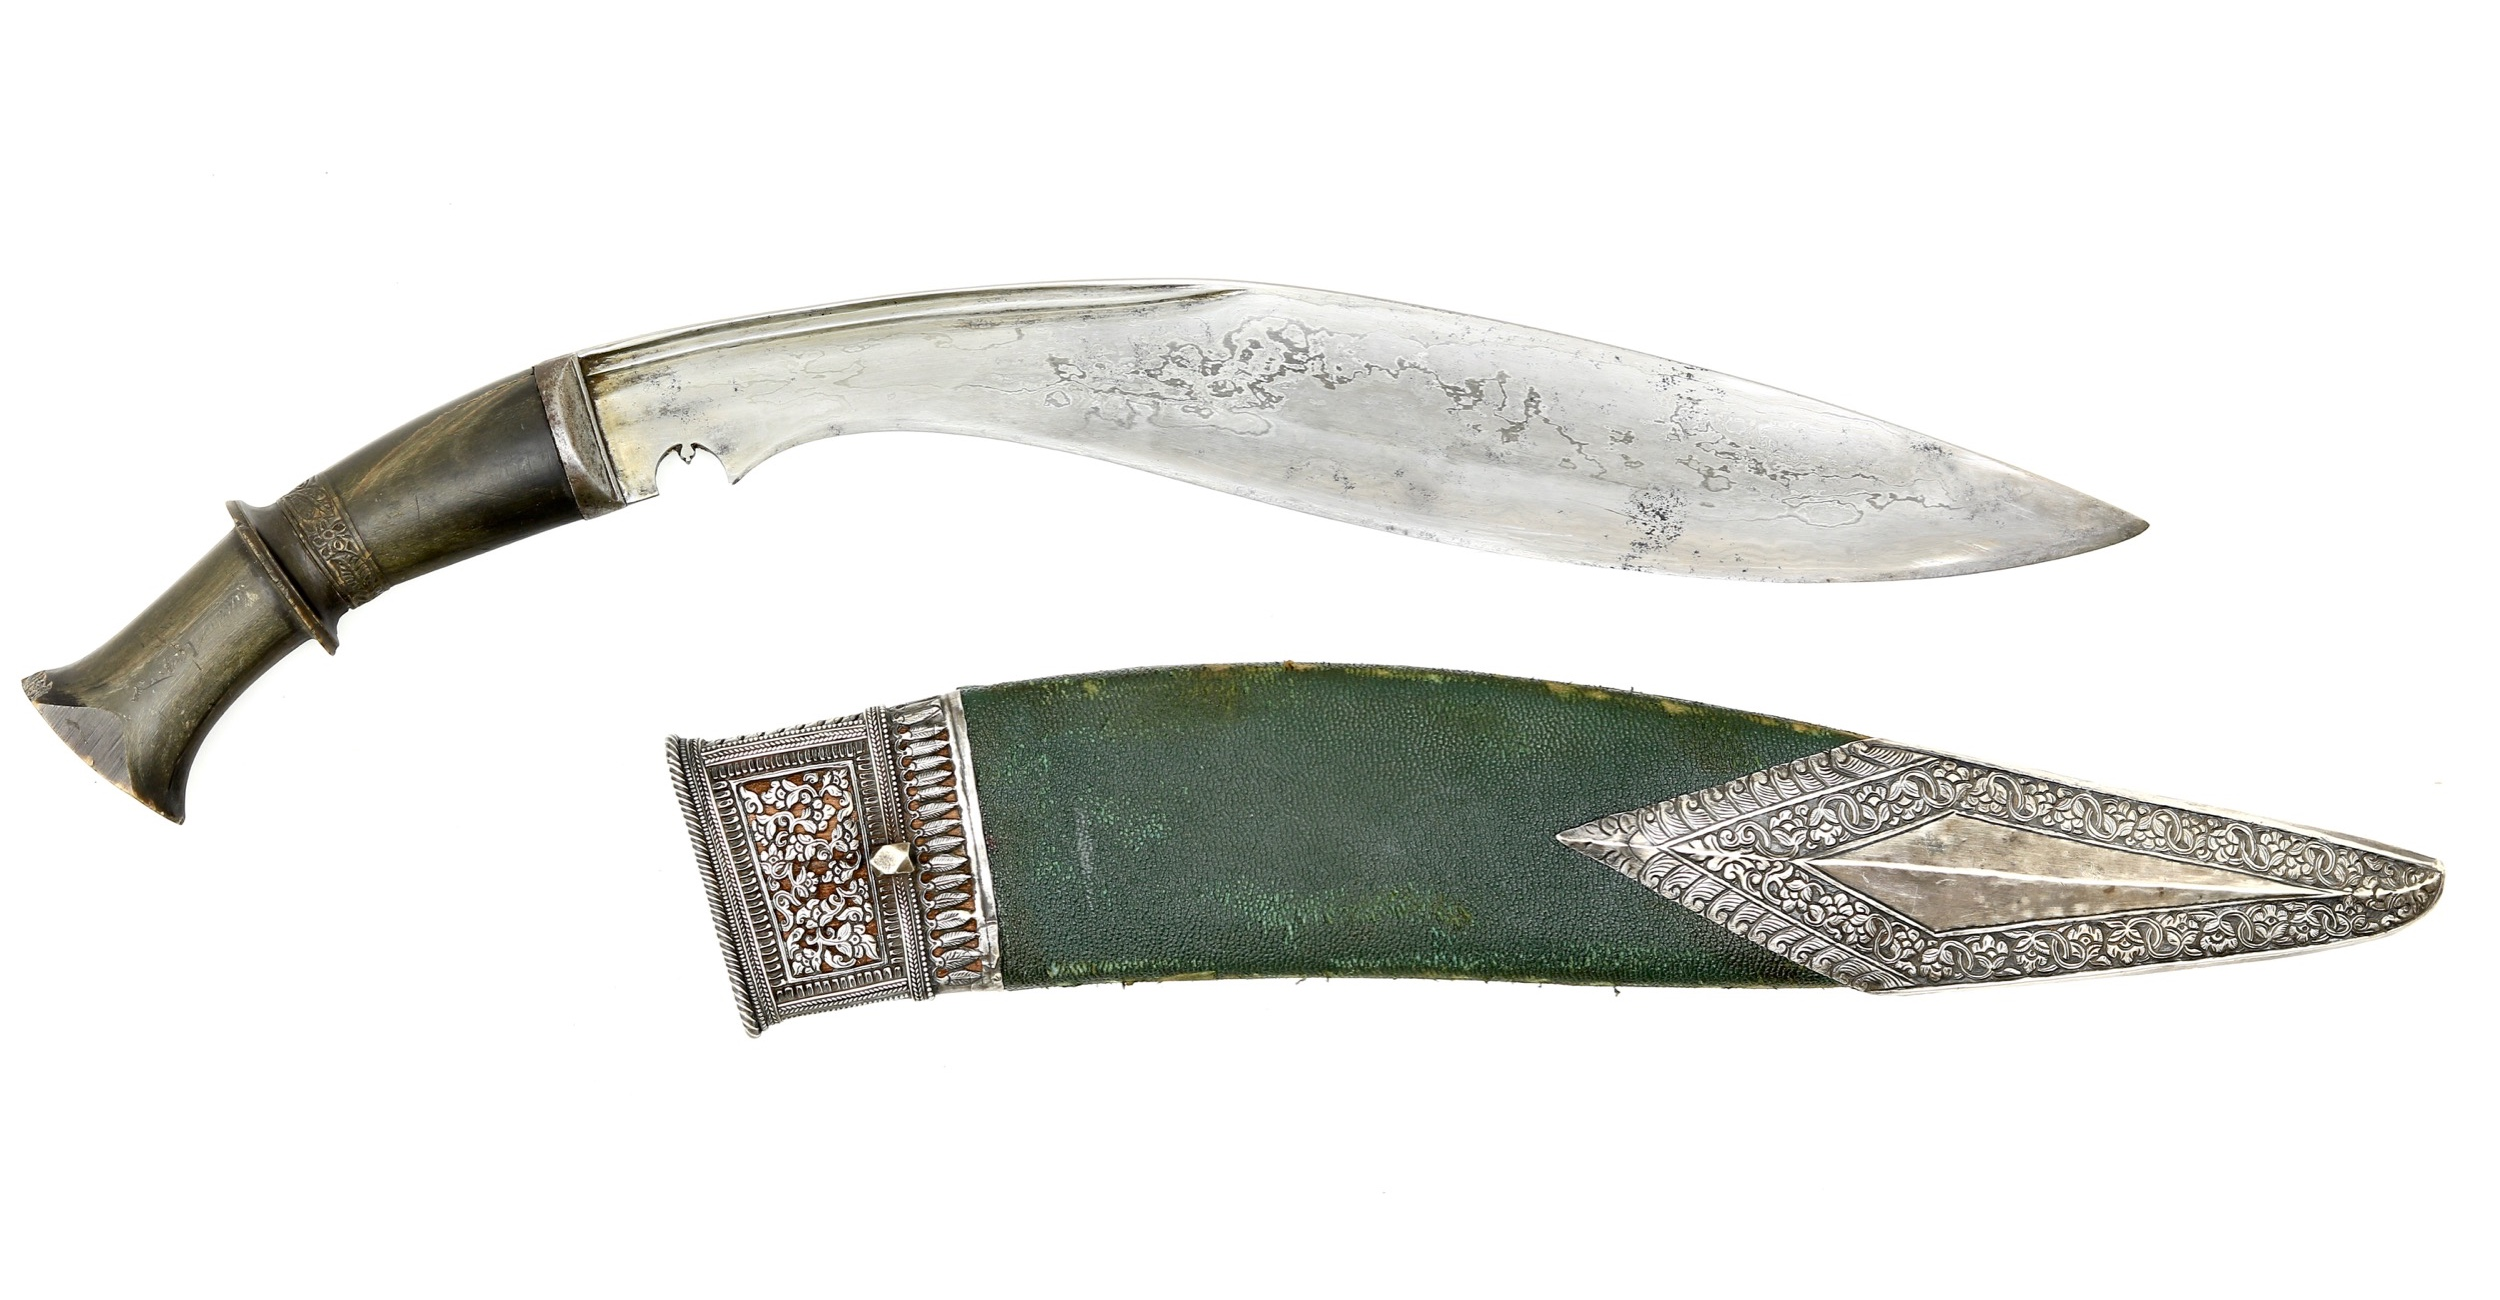 Fine Nepalese kukri or khukuri with silver mounts